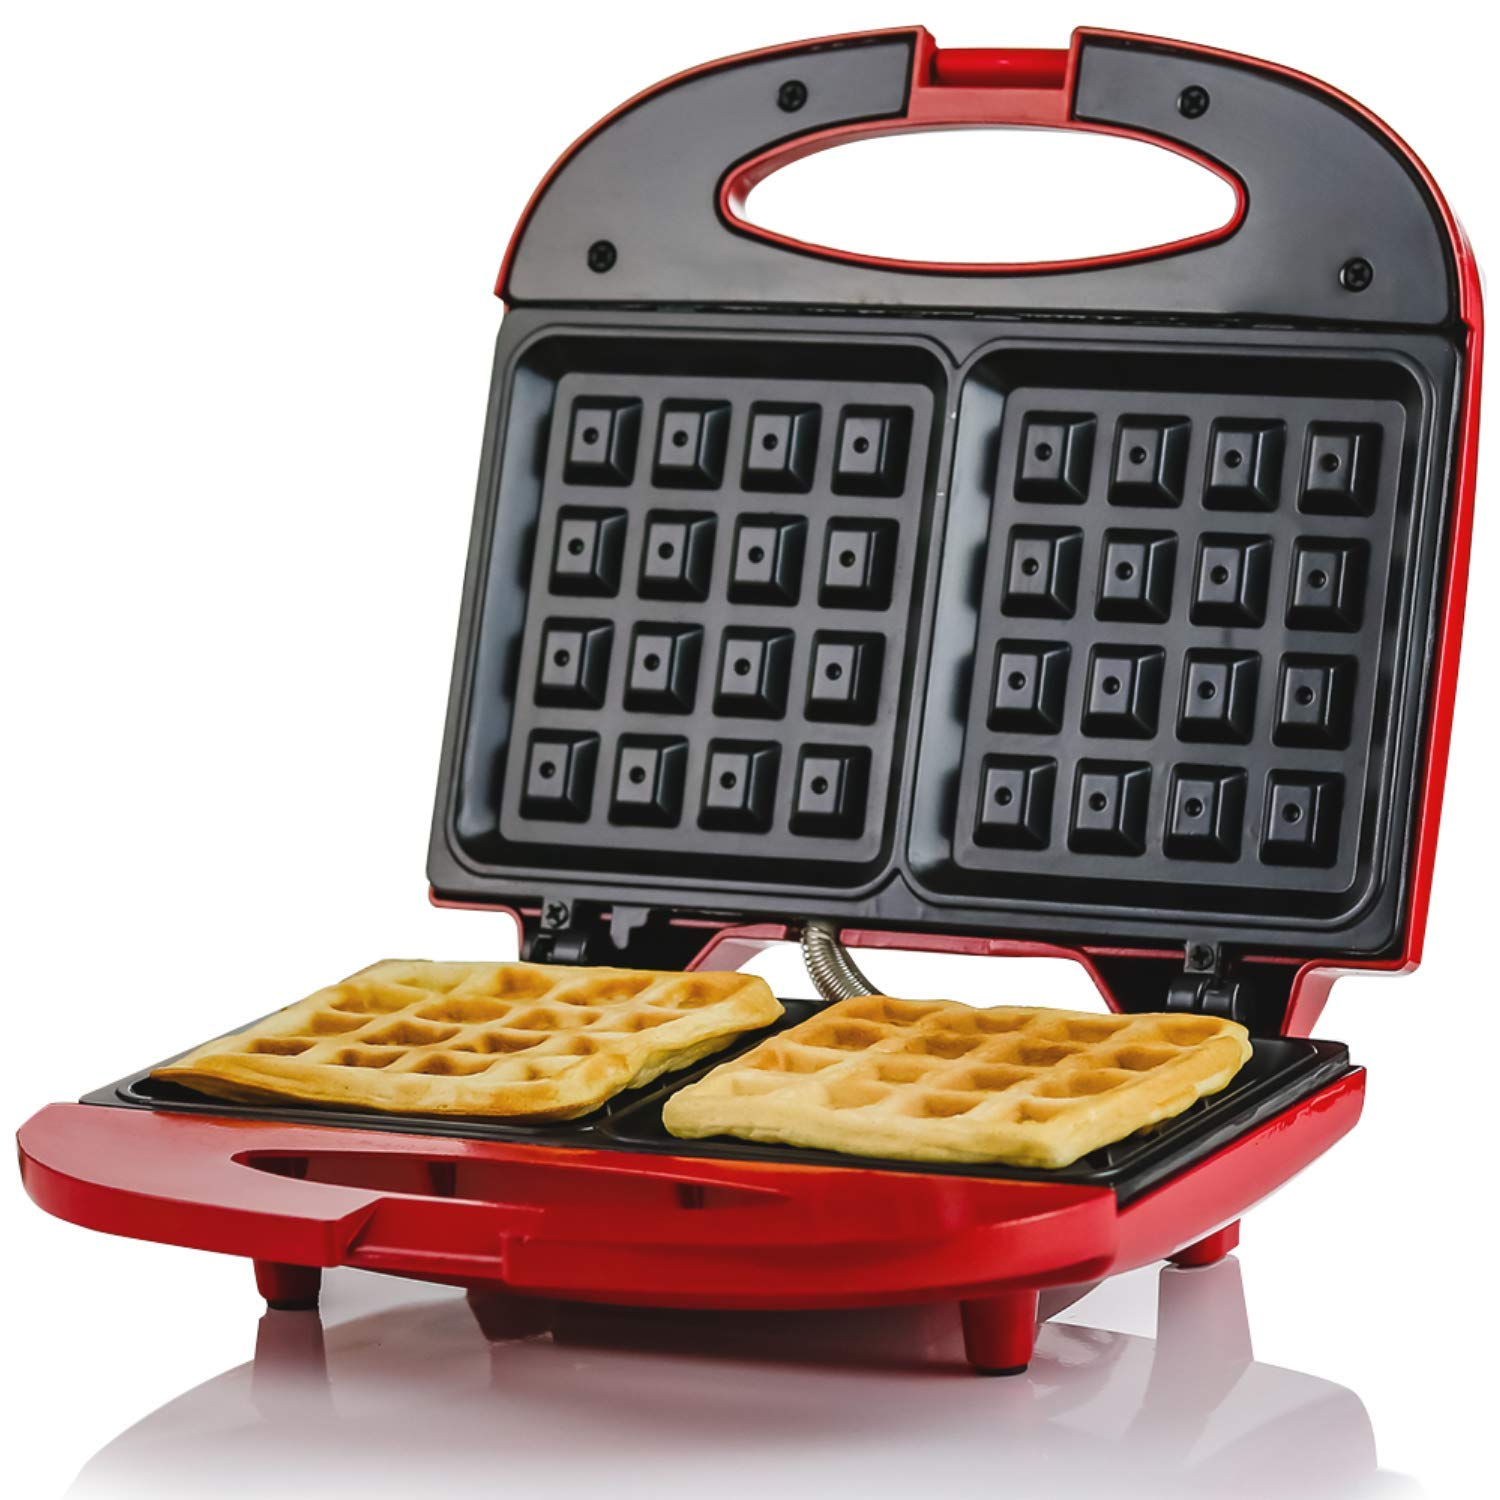 Ovente WMS602R Electric Waffle Maker, 750W, Non-Stick Plates, Safety Cover Latch, Indicator Lights, Cool-Touch Handle, Red, 2-Slice,